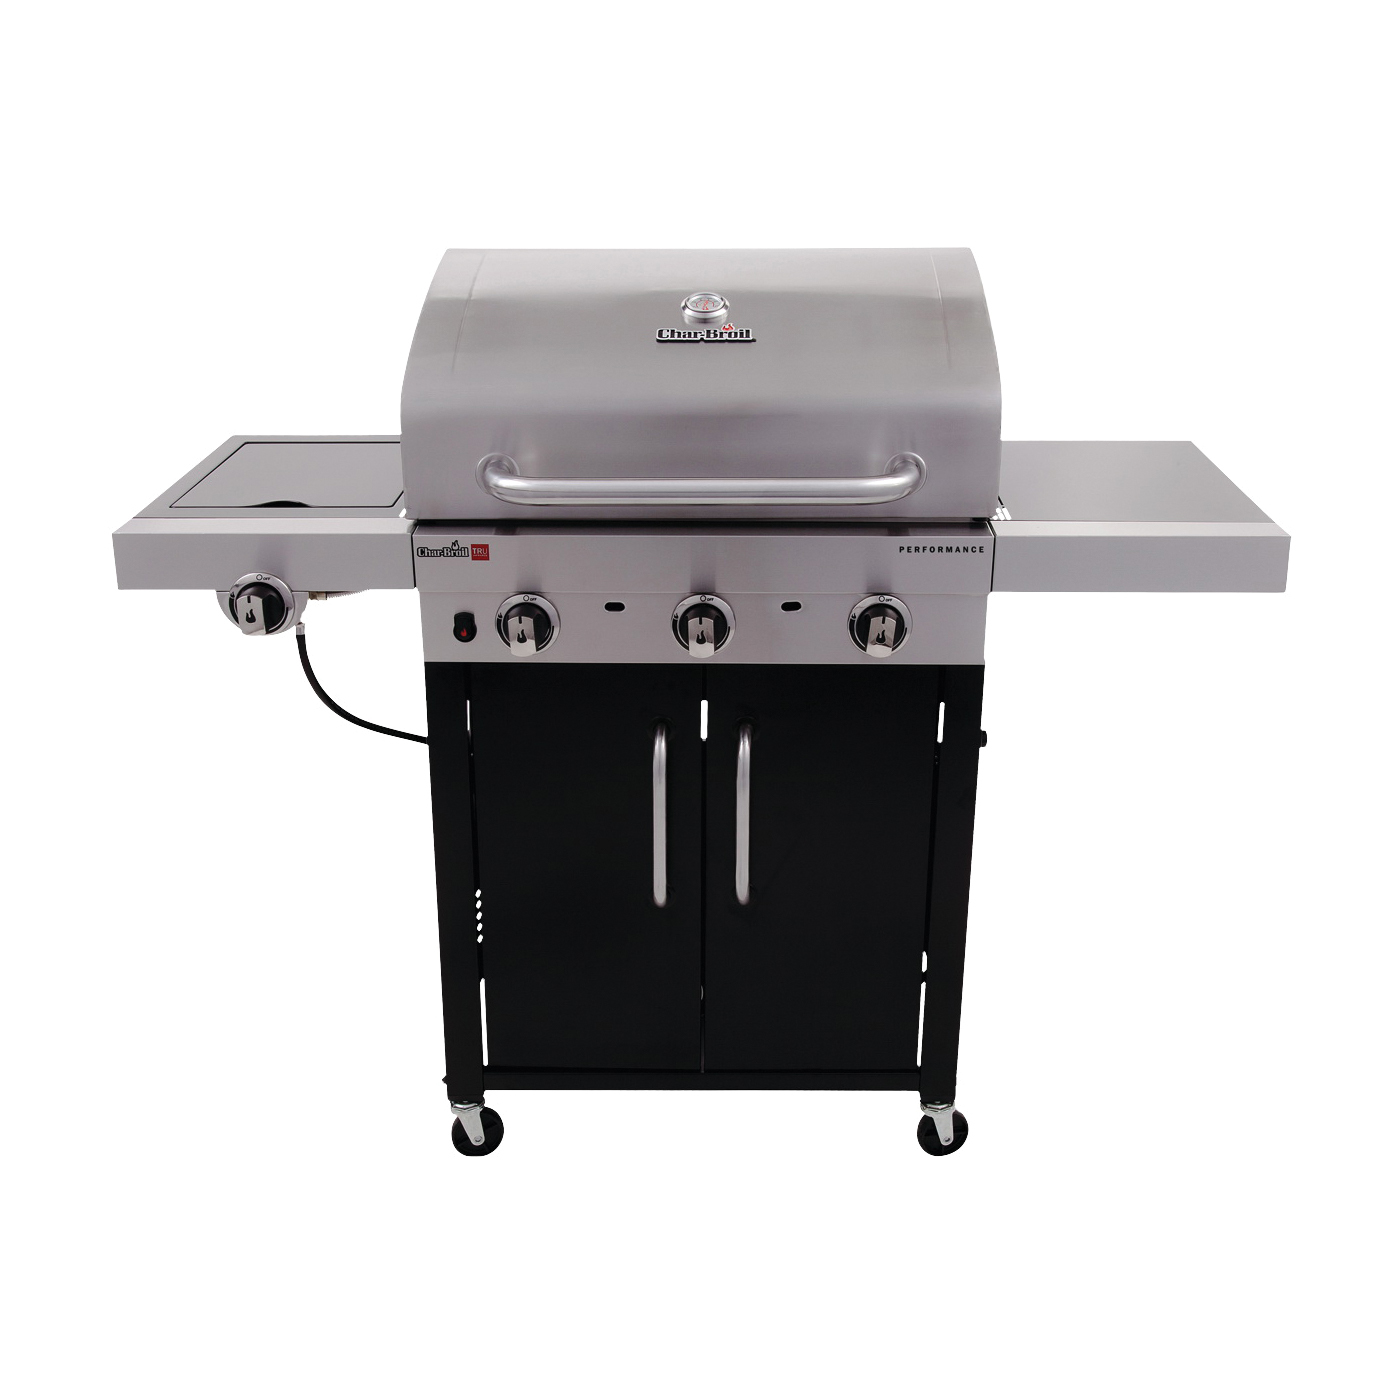 Picture of Char-Broil Performance Series 463371316 Gas Grill, 10000 Btu BTU, 3 -Burner, 450 sq-in Primary Cooking Surface